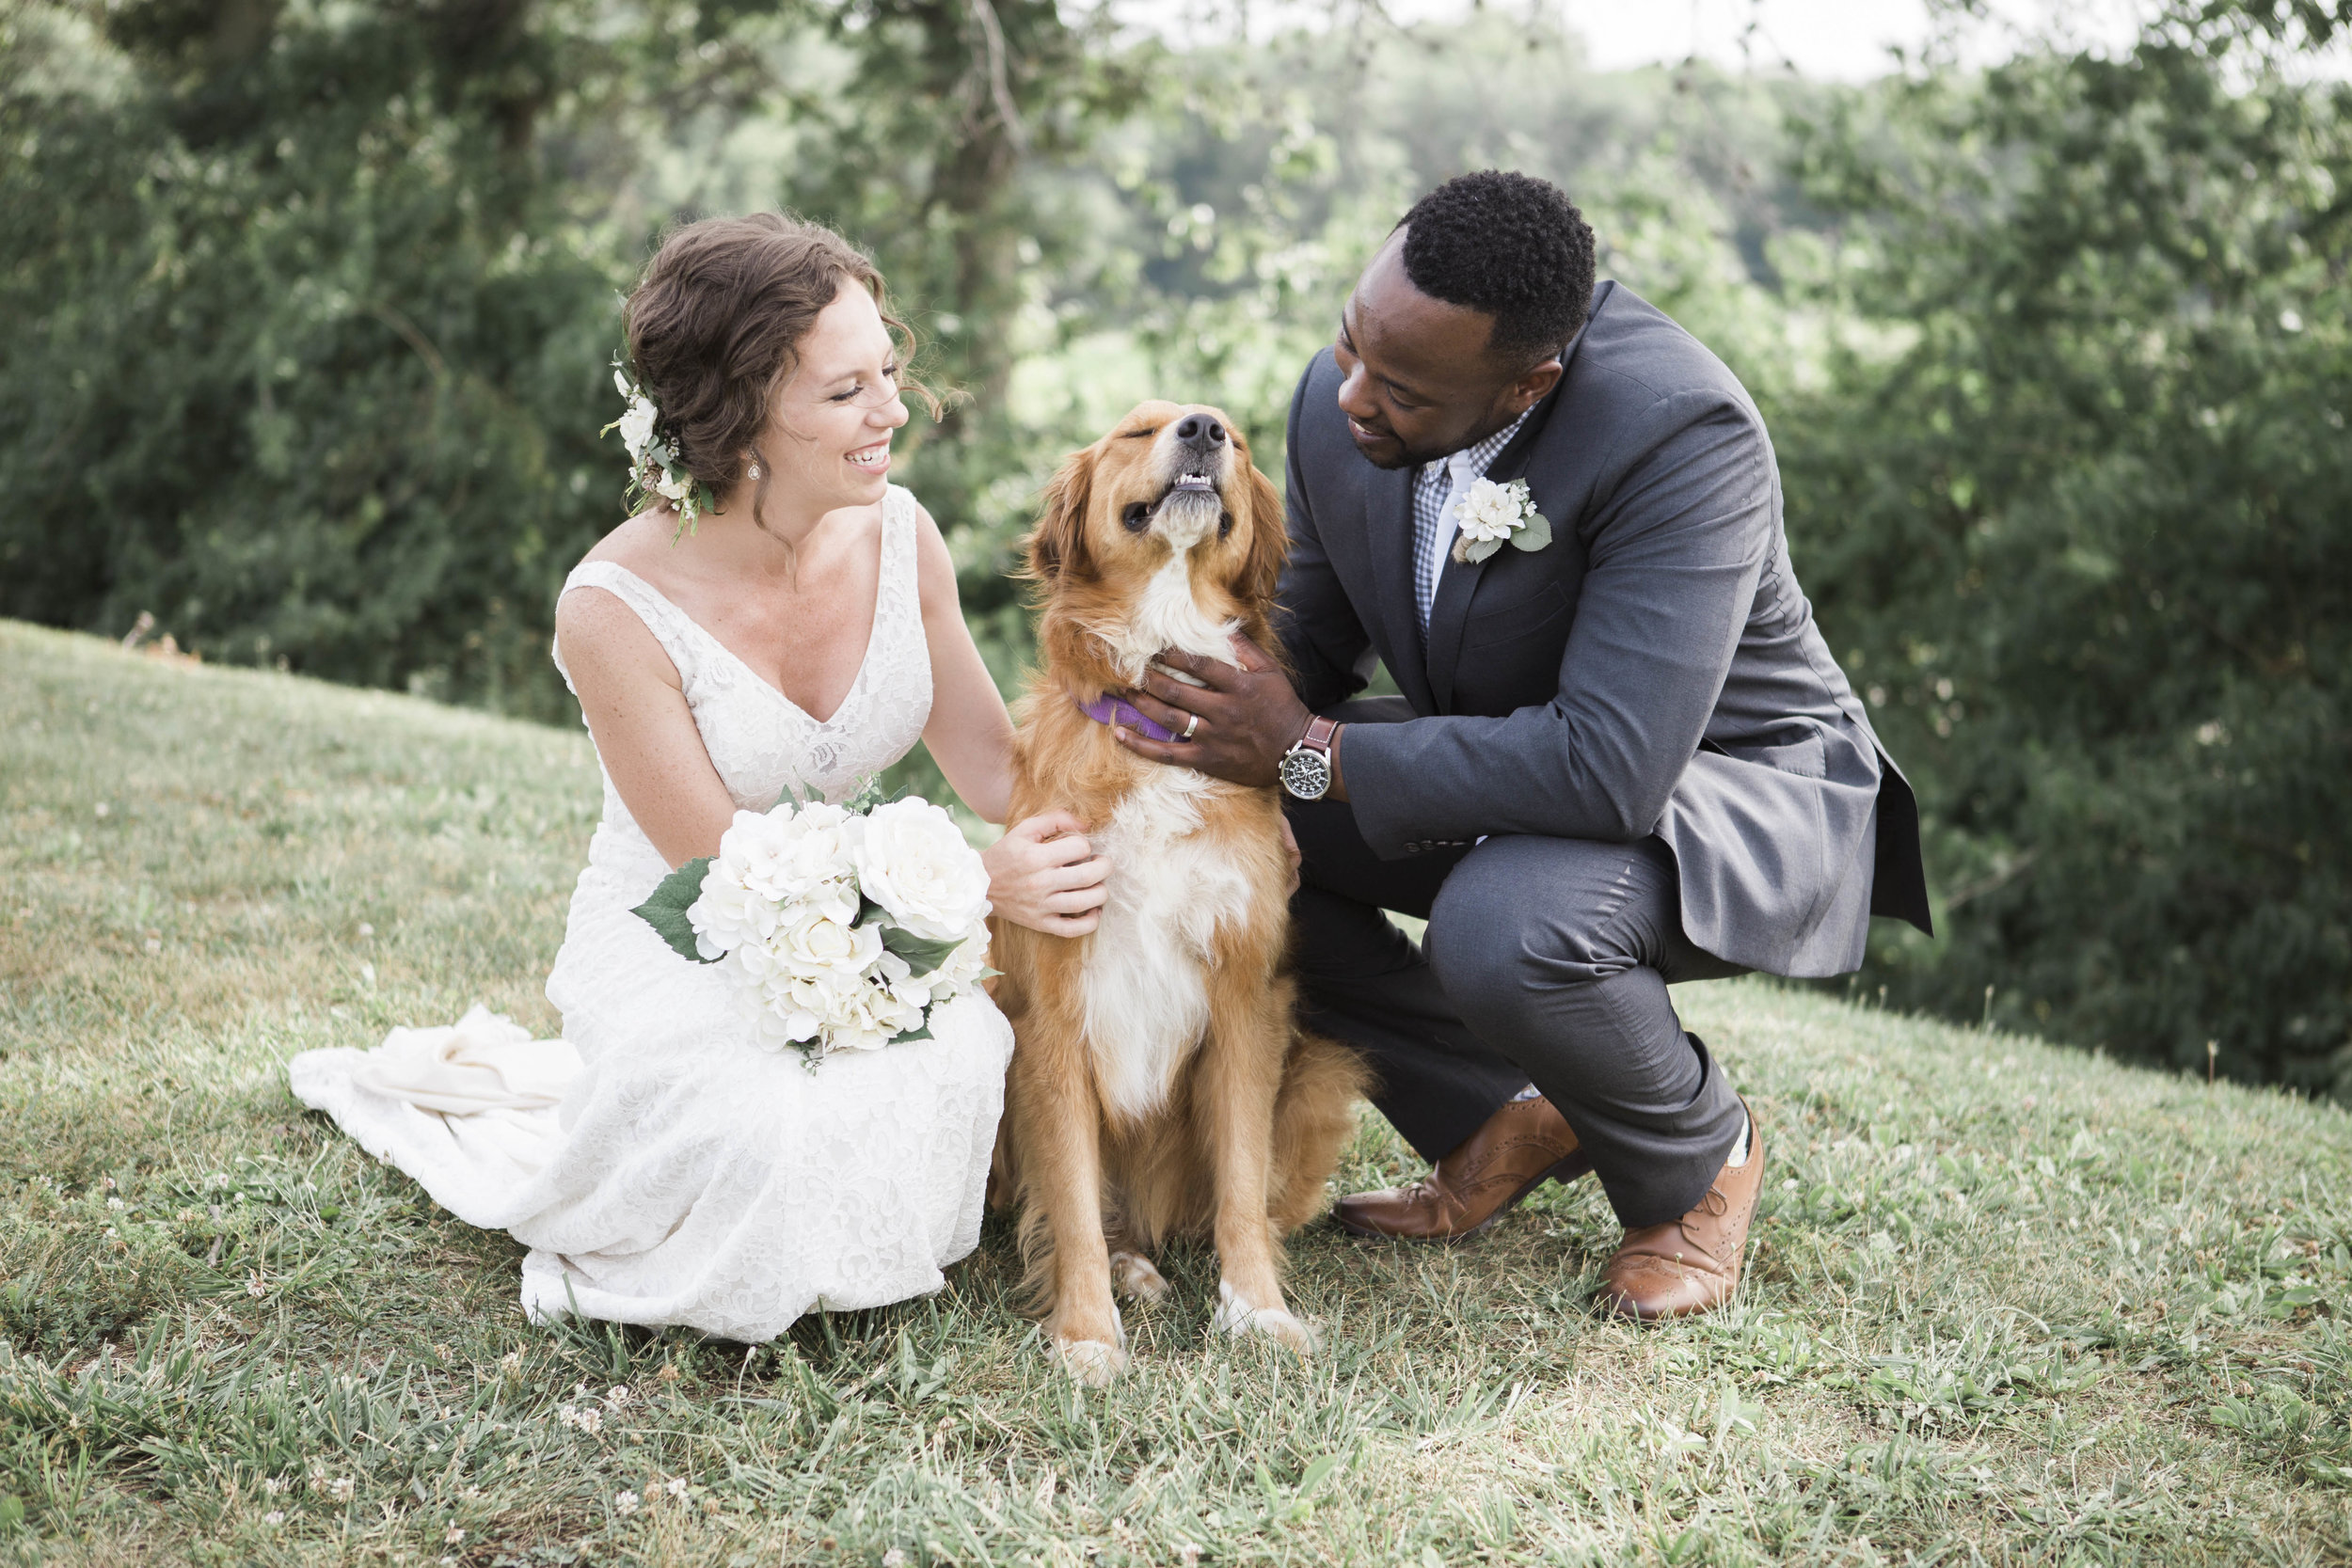 blog_dog_in_wedding-1.jpg